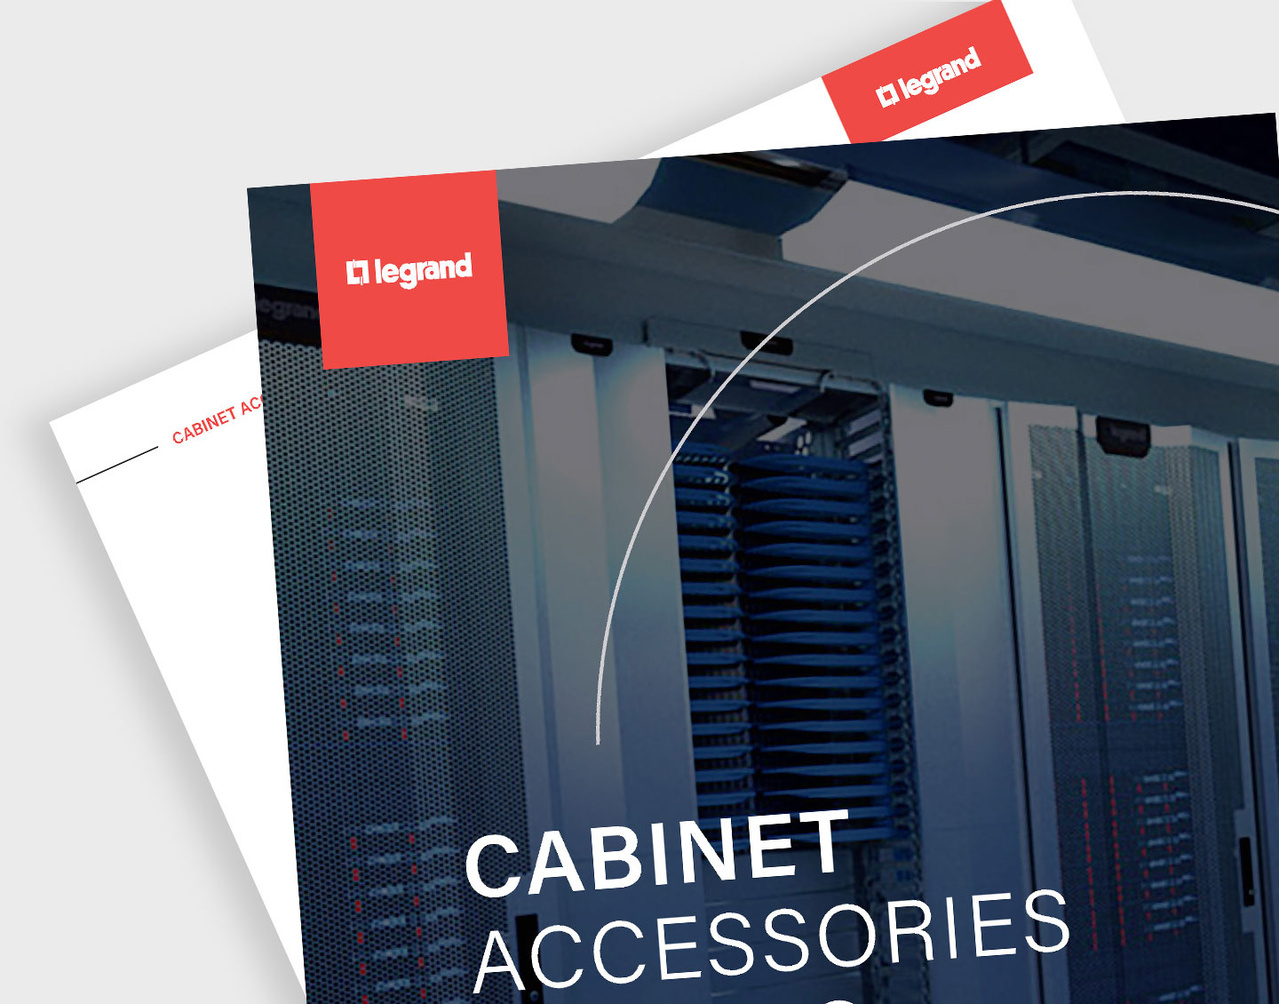 Screenshot of cabinets accessories catalog